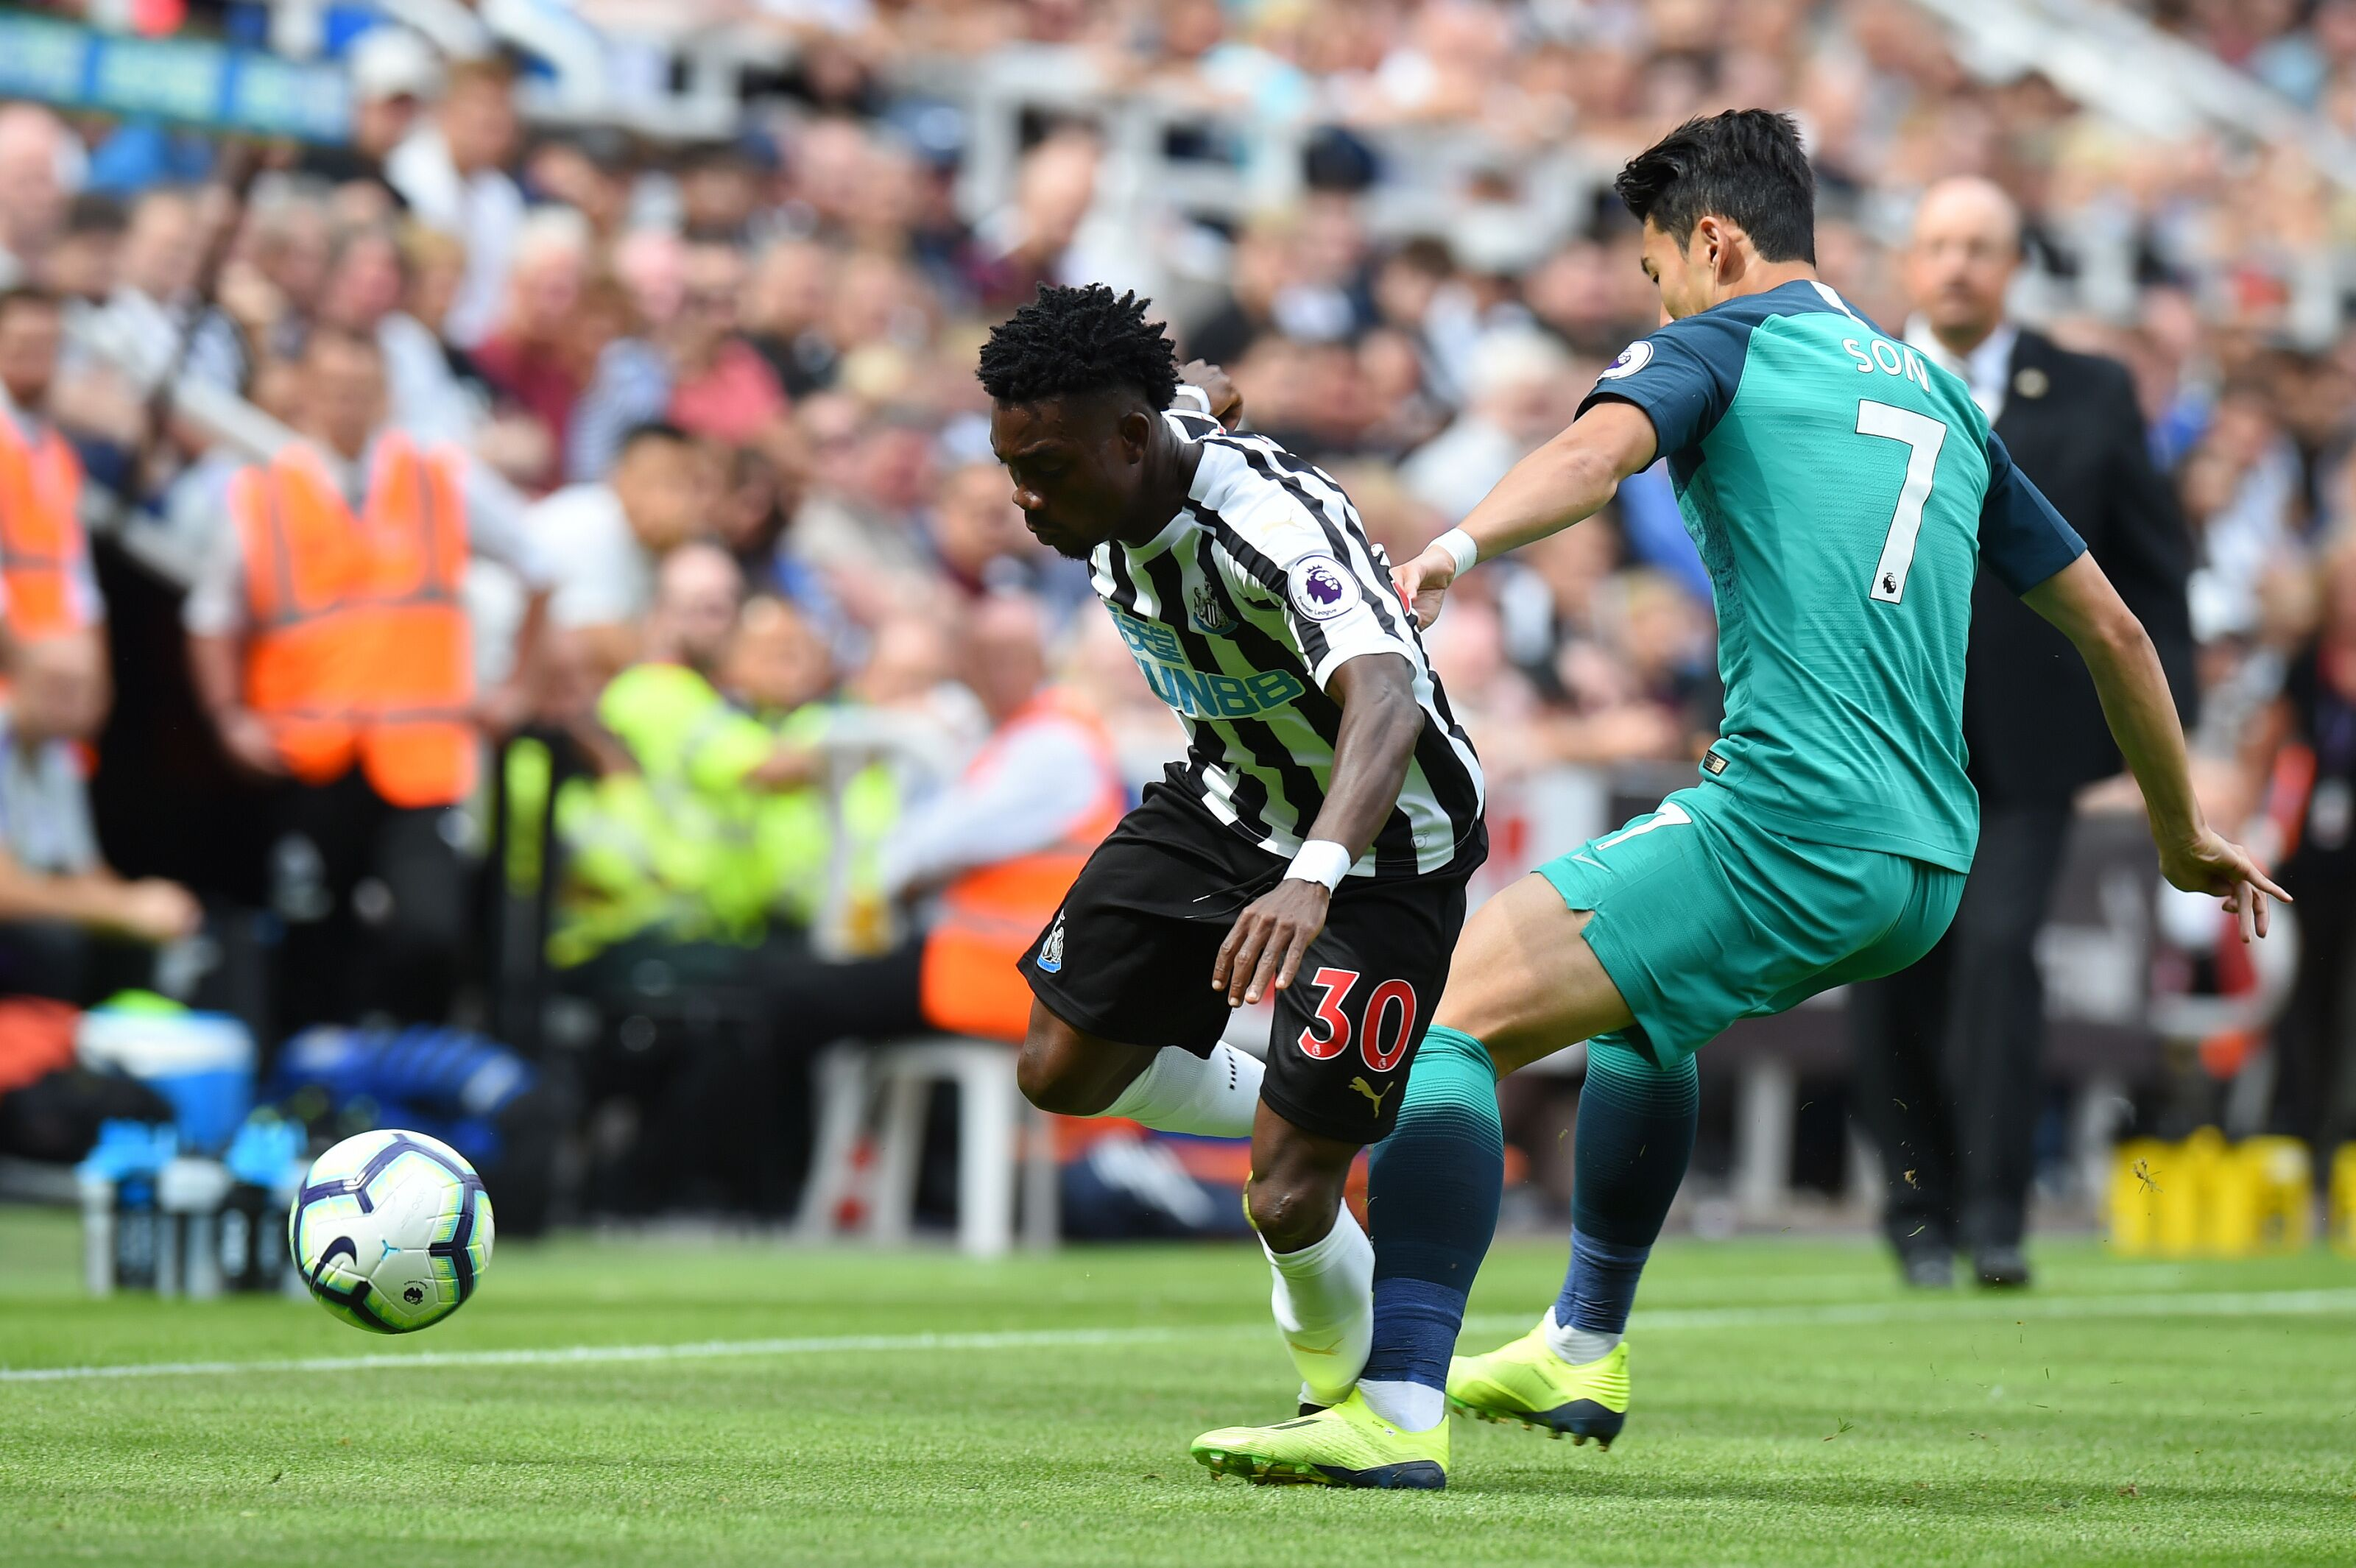 FIFA 19 simulation: Newcastle United handed a 2-0 loss by Spurs